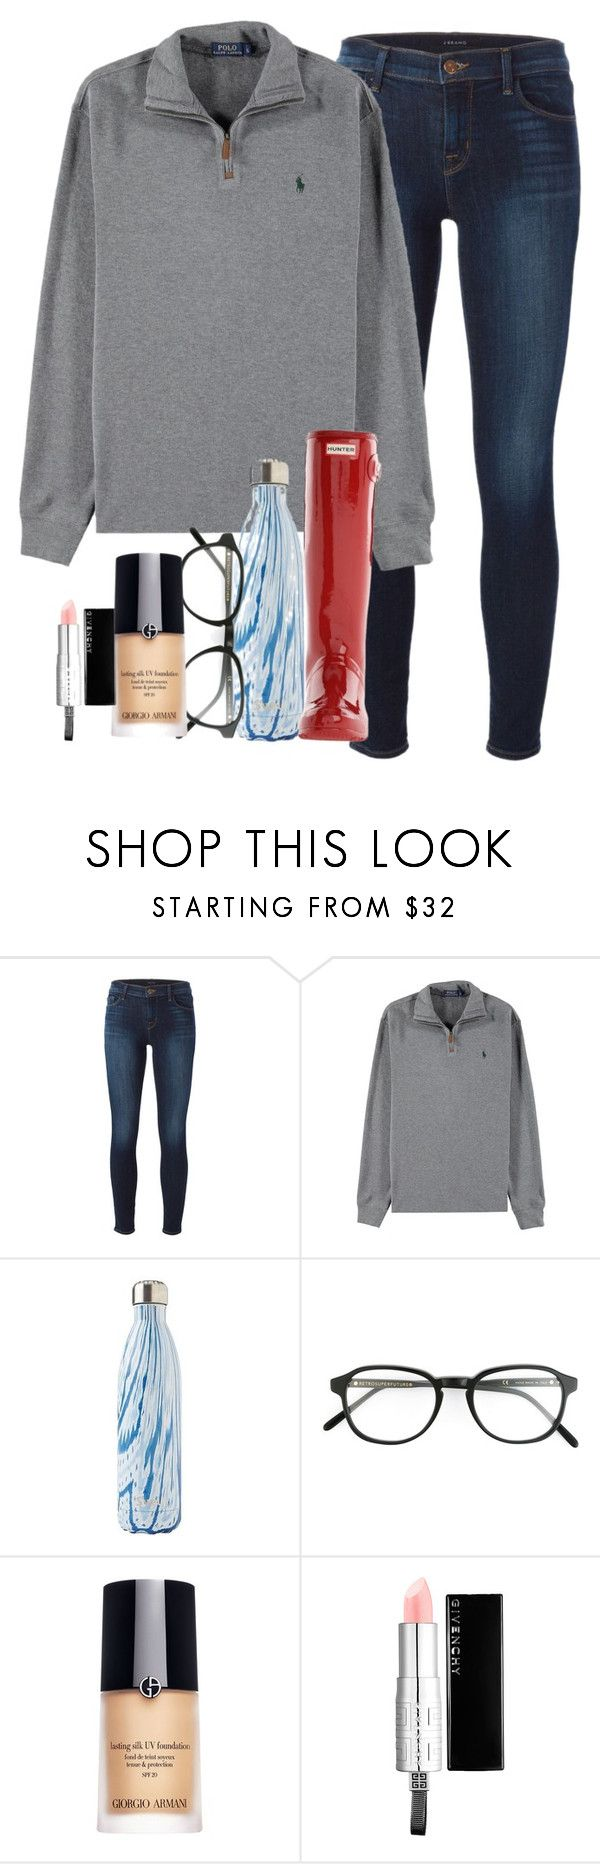 """""""'MERICA"""" by elizabethannee ❤ liked on Polyvore featuring J Brand, Polo Ralph Lauren, S'well, RetroSuperFuture, Giorgio Armani, Givenchy, Hunter, women's clothing, women's fashion and women"""